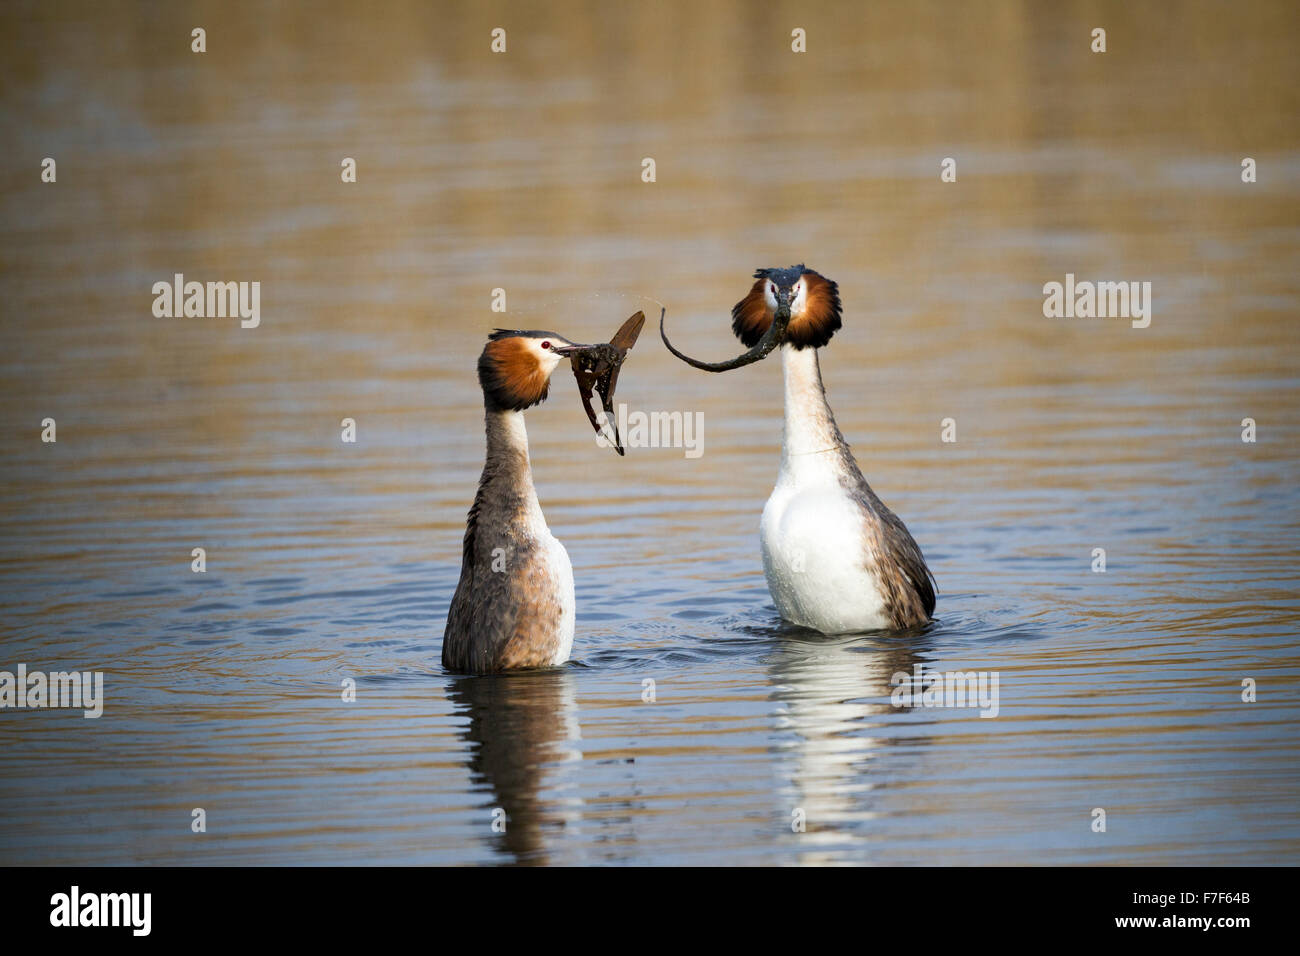 Great Crested Grebes Podiceps cristatus in weed dance display - Stock Image